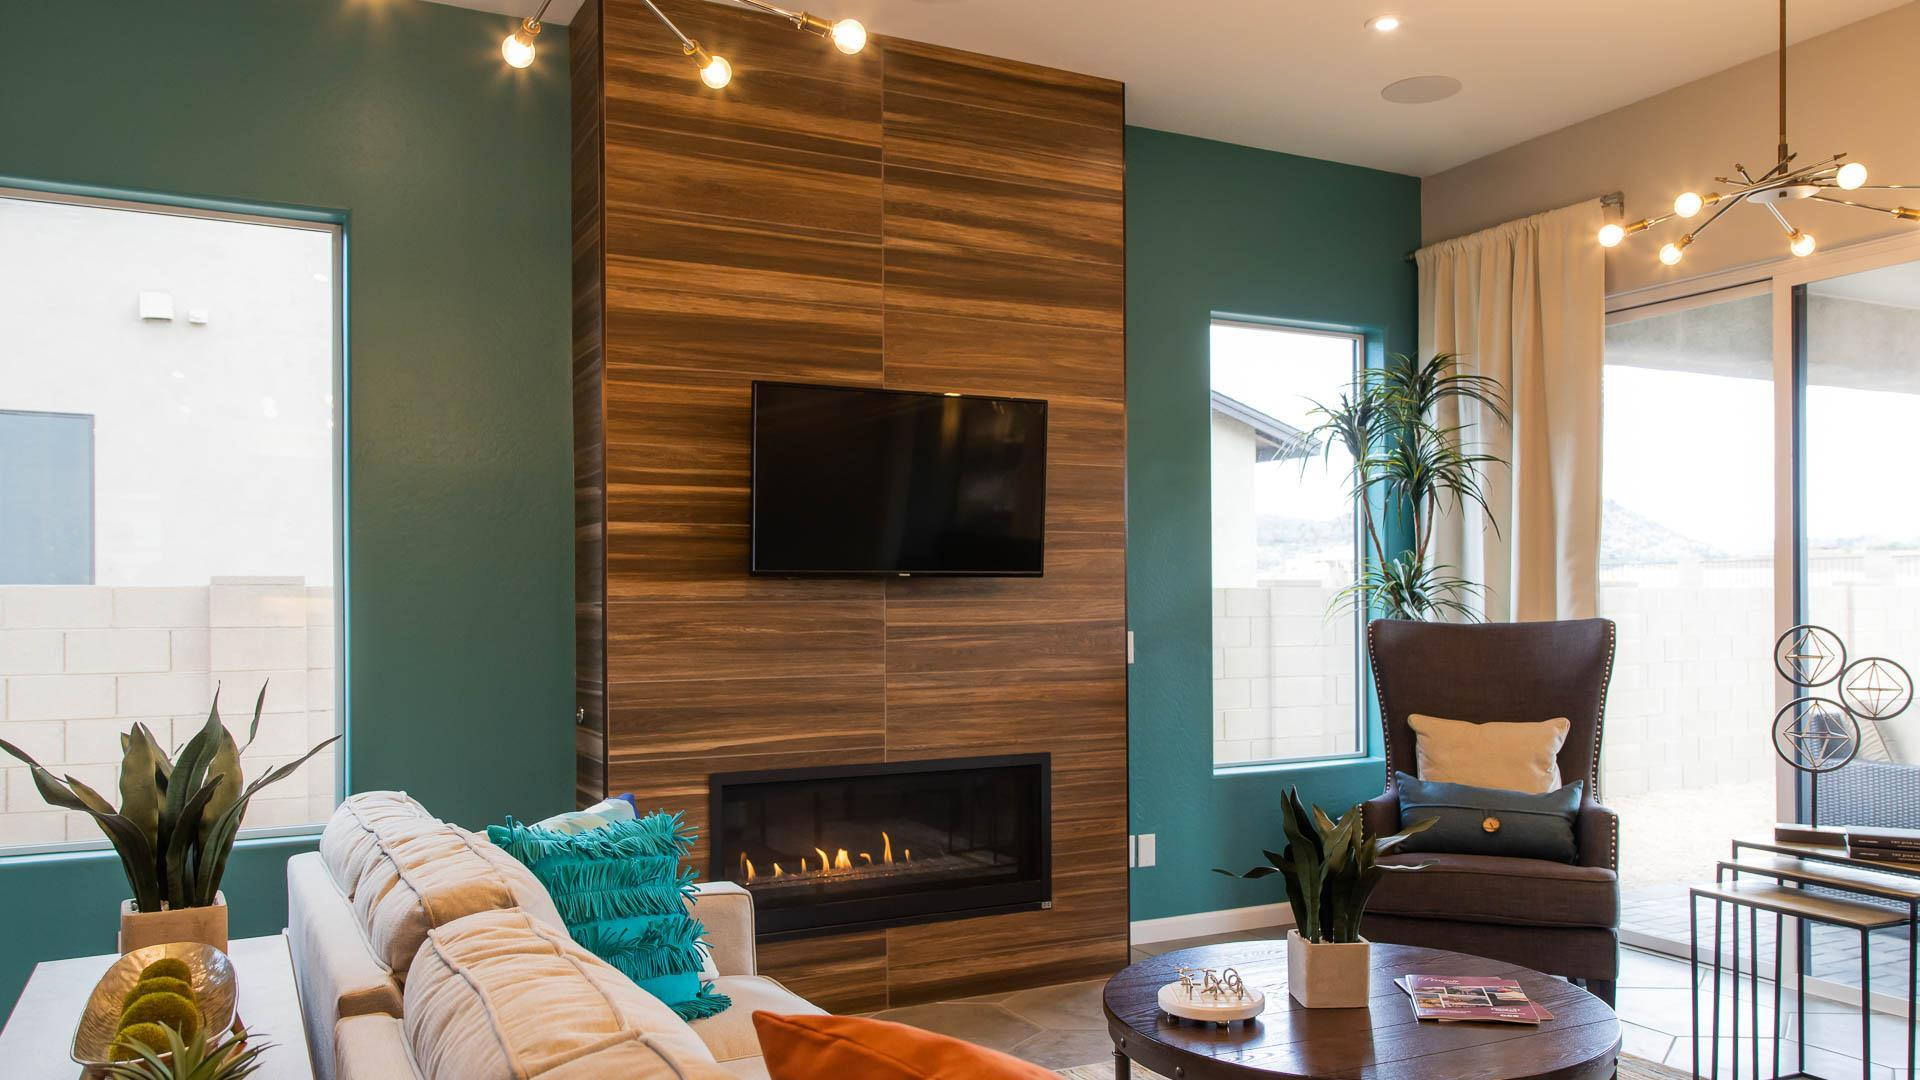 Living Area featured in the Corona By Mandalay Homes in Prescott, AZ